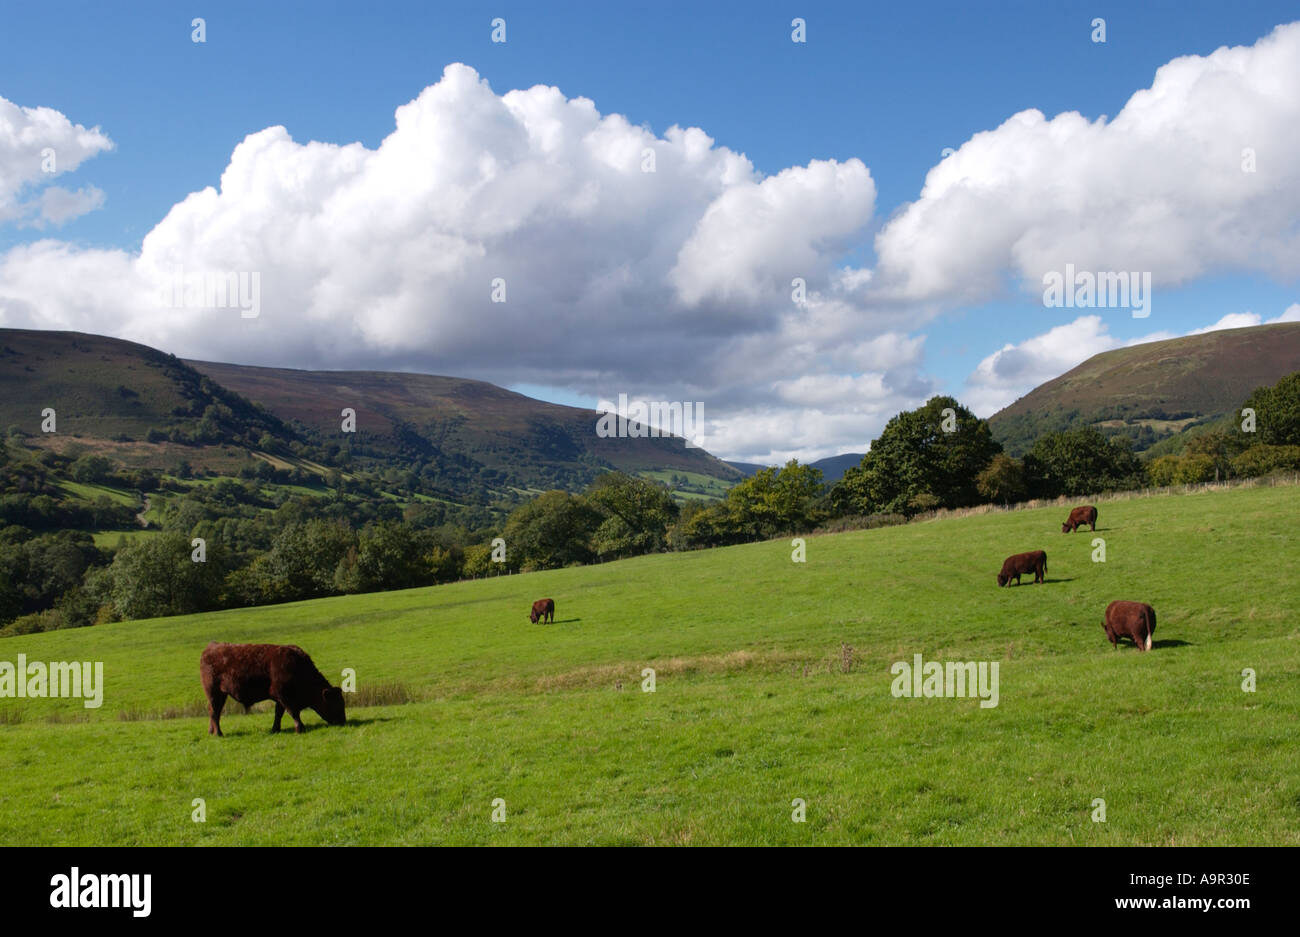 Red Devon cattle grazing at an organic farm in the Llanthony Valley Vale of Ewyas Monmouthshire Wales UK - Stock Image